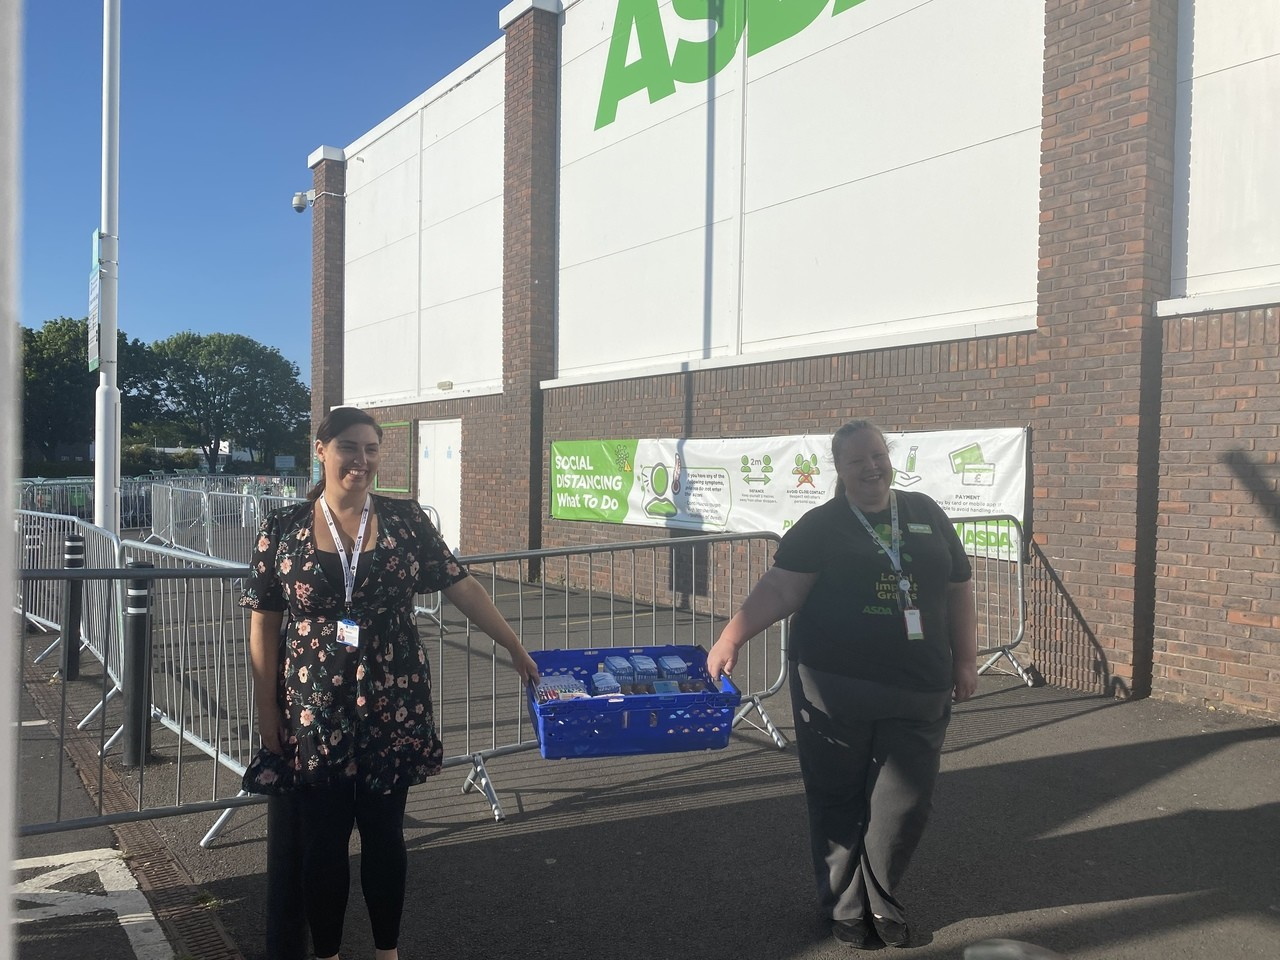 Veterans' support | Asda Gosport